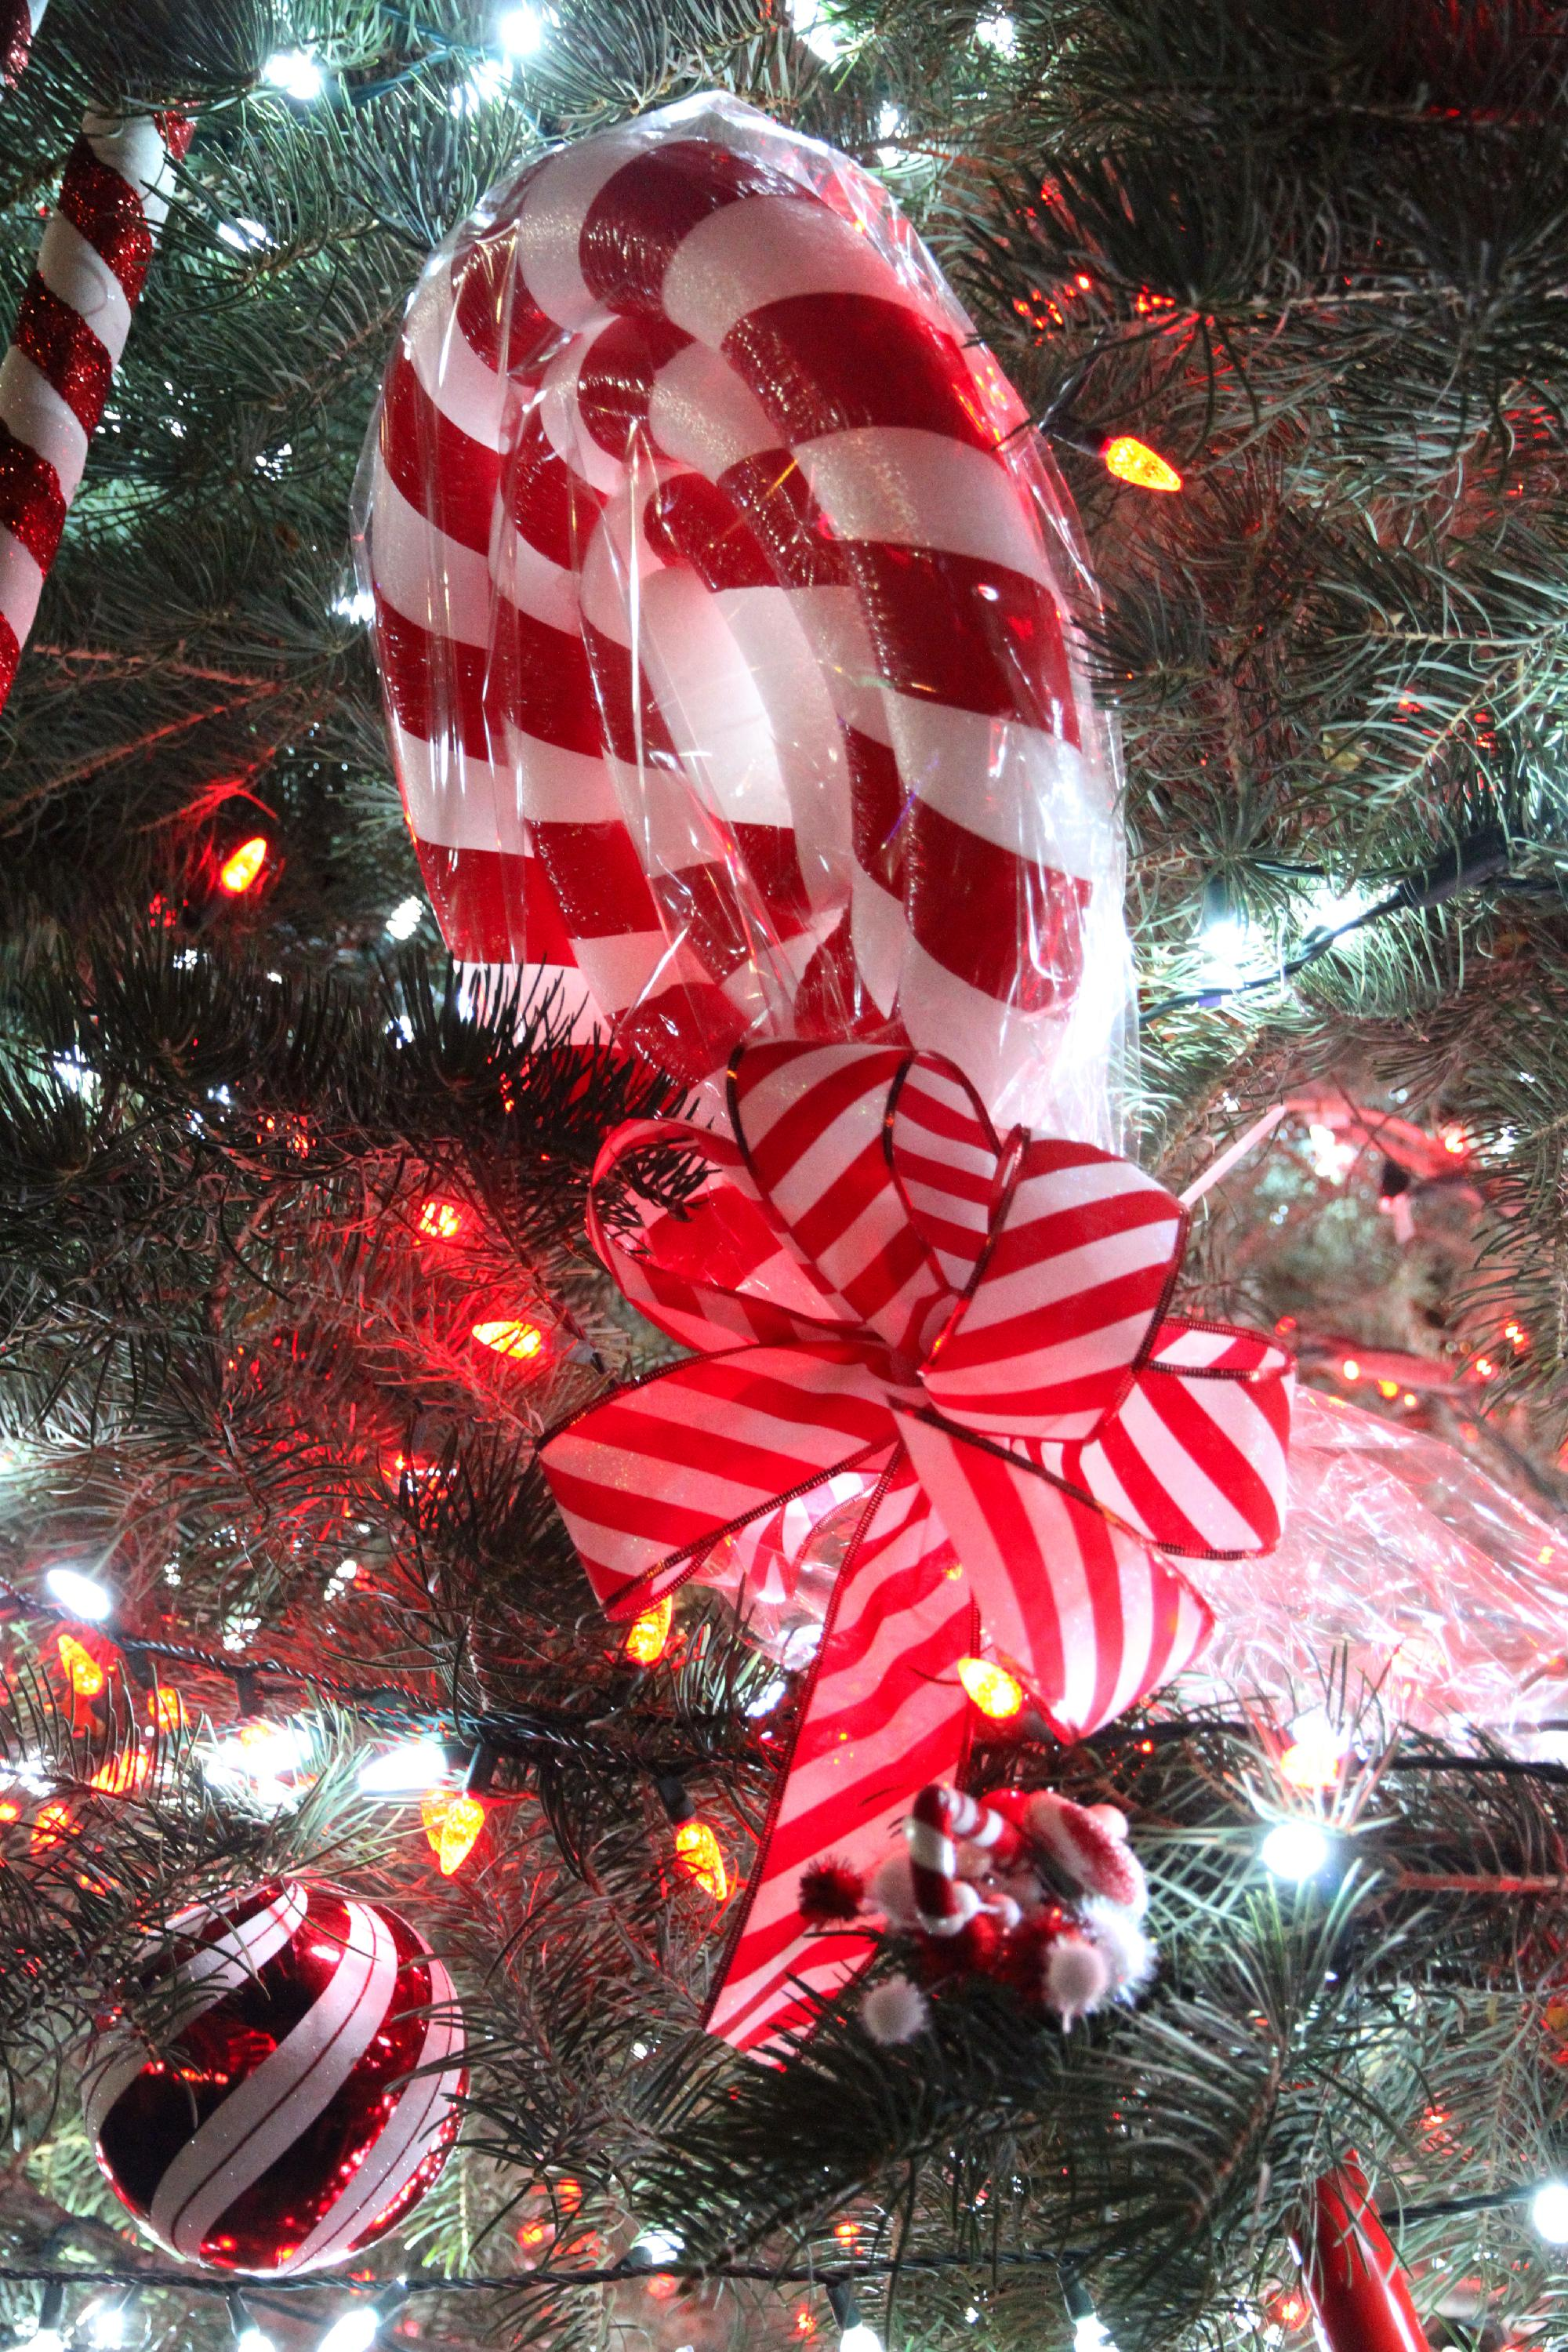 november 16th tree lighting and wyandotte third friday 6 pm start time visitors are welcomed to the tree lighting at the intersection of sycamore and - Candy Christmas Divorce